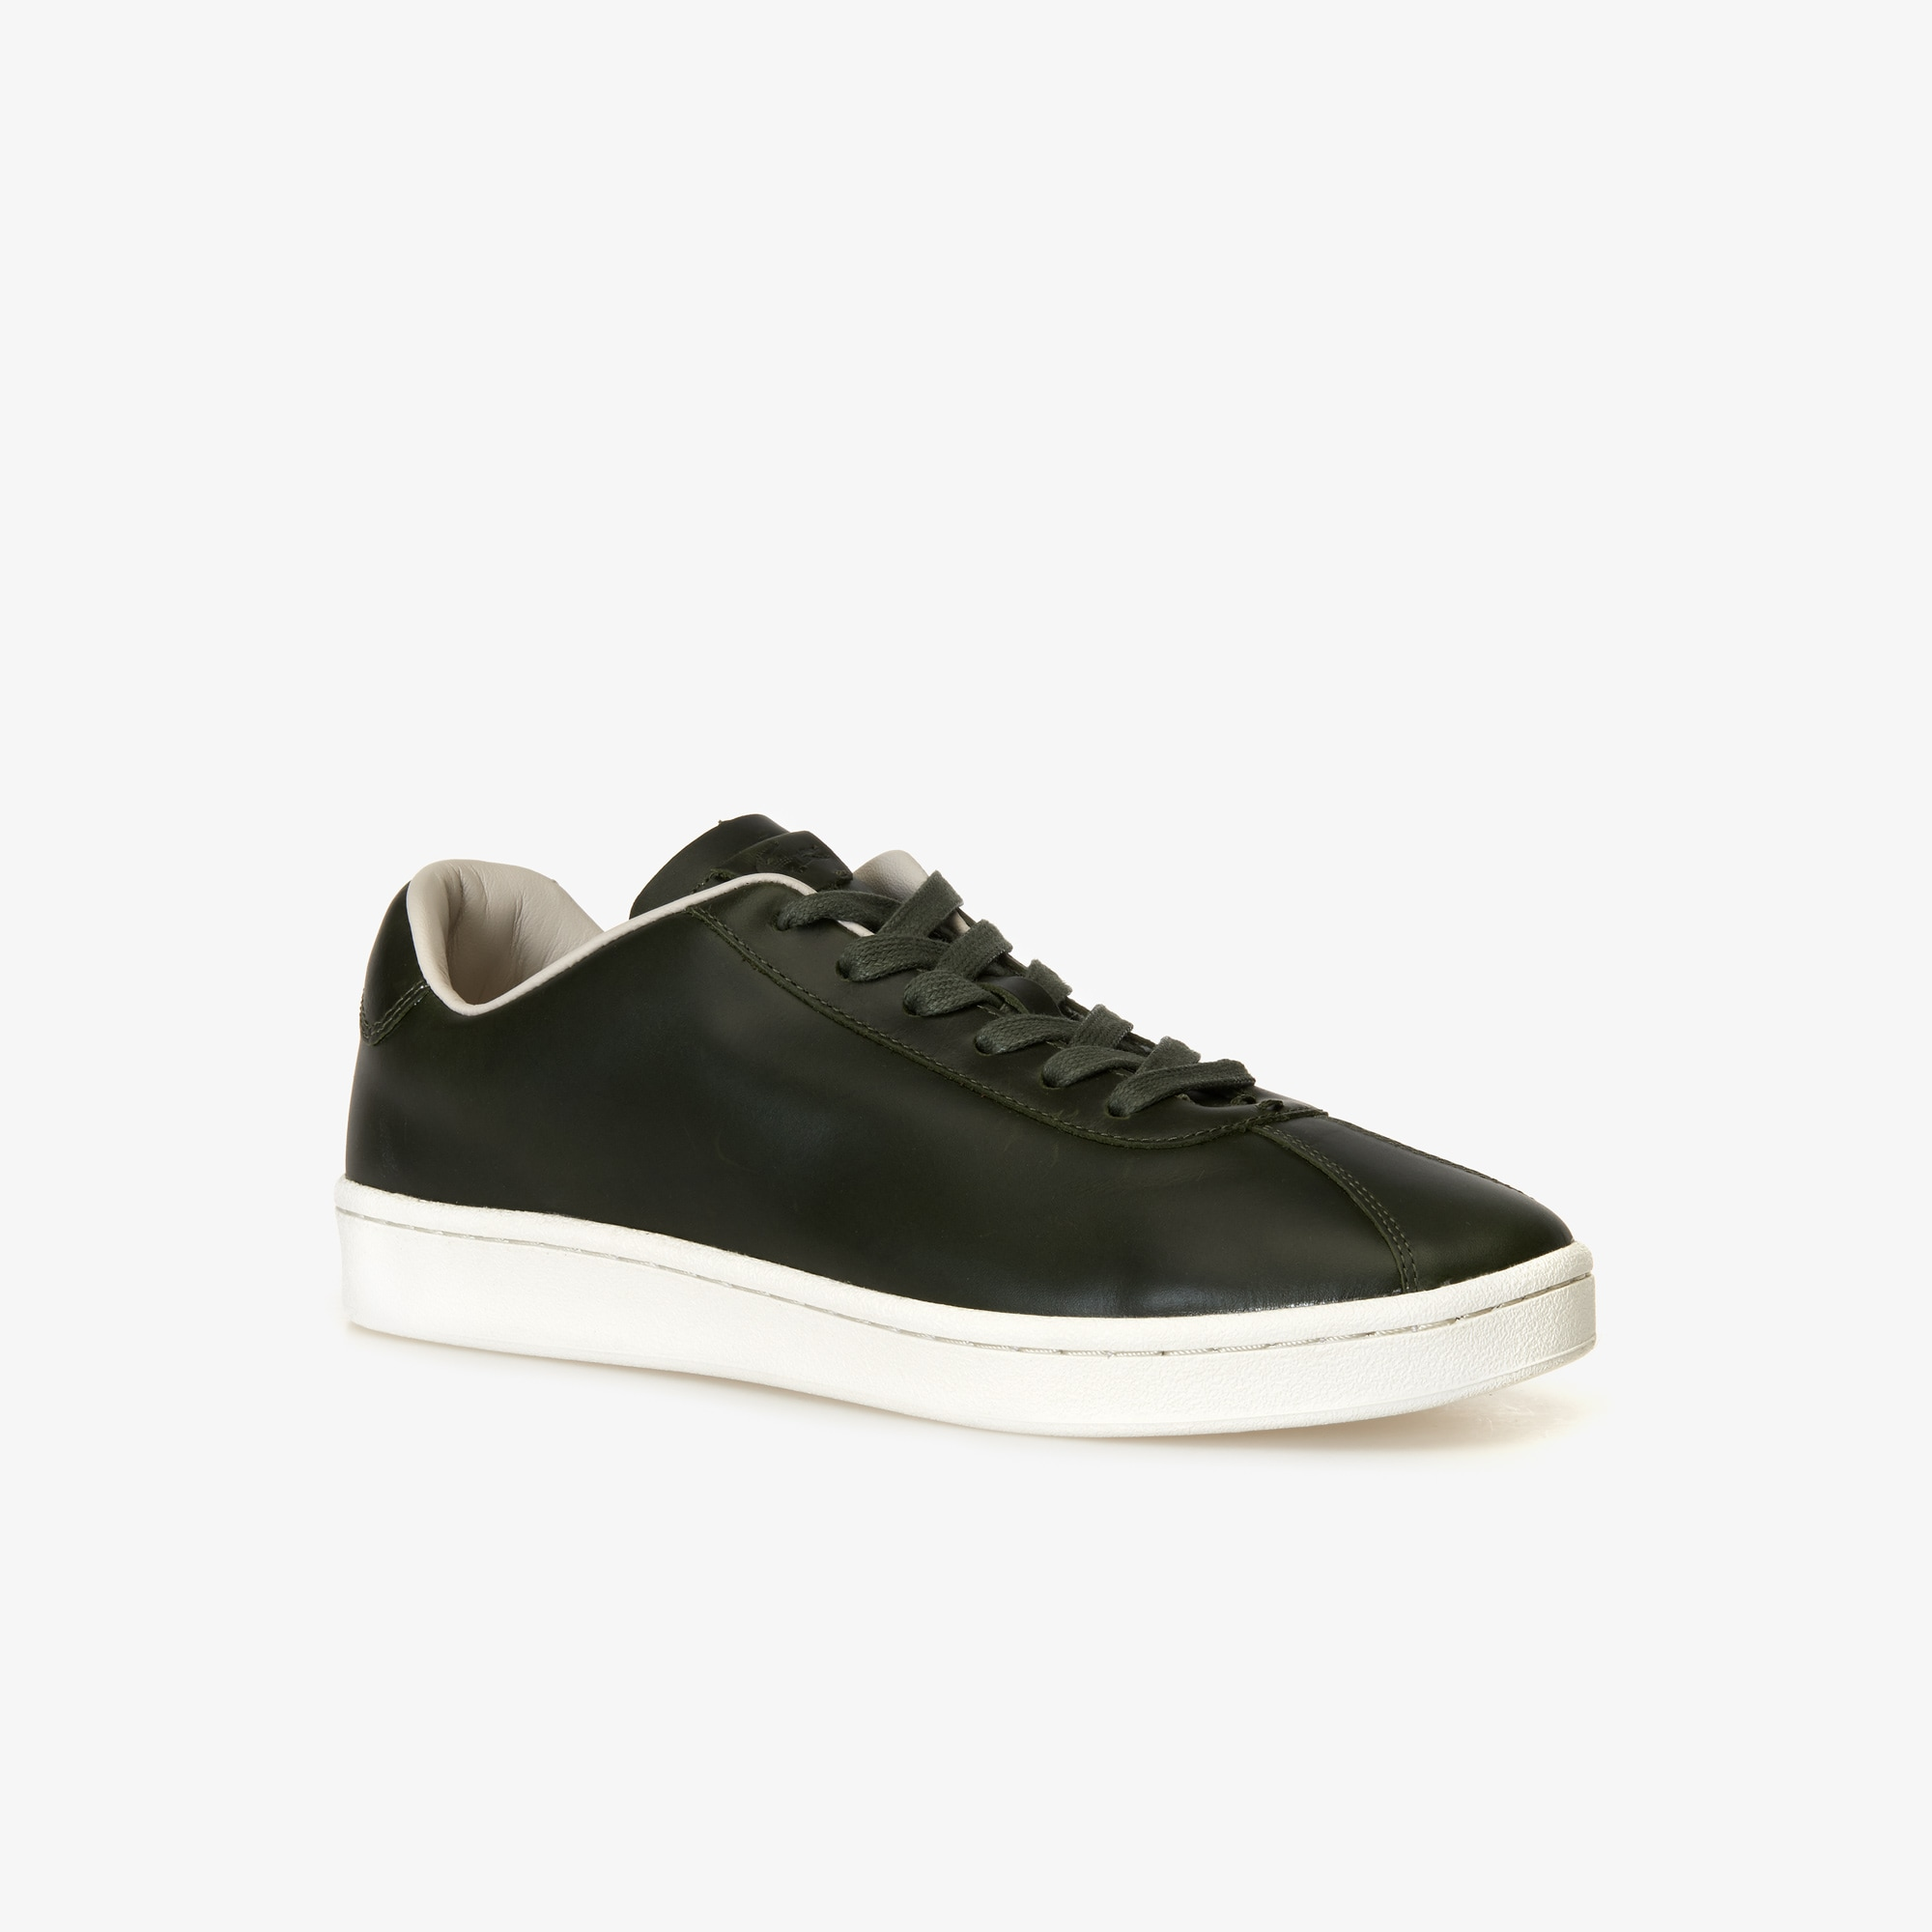 27e841f290b Men's Shoes | Shoes for Men | LACOSTE